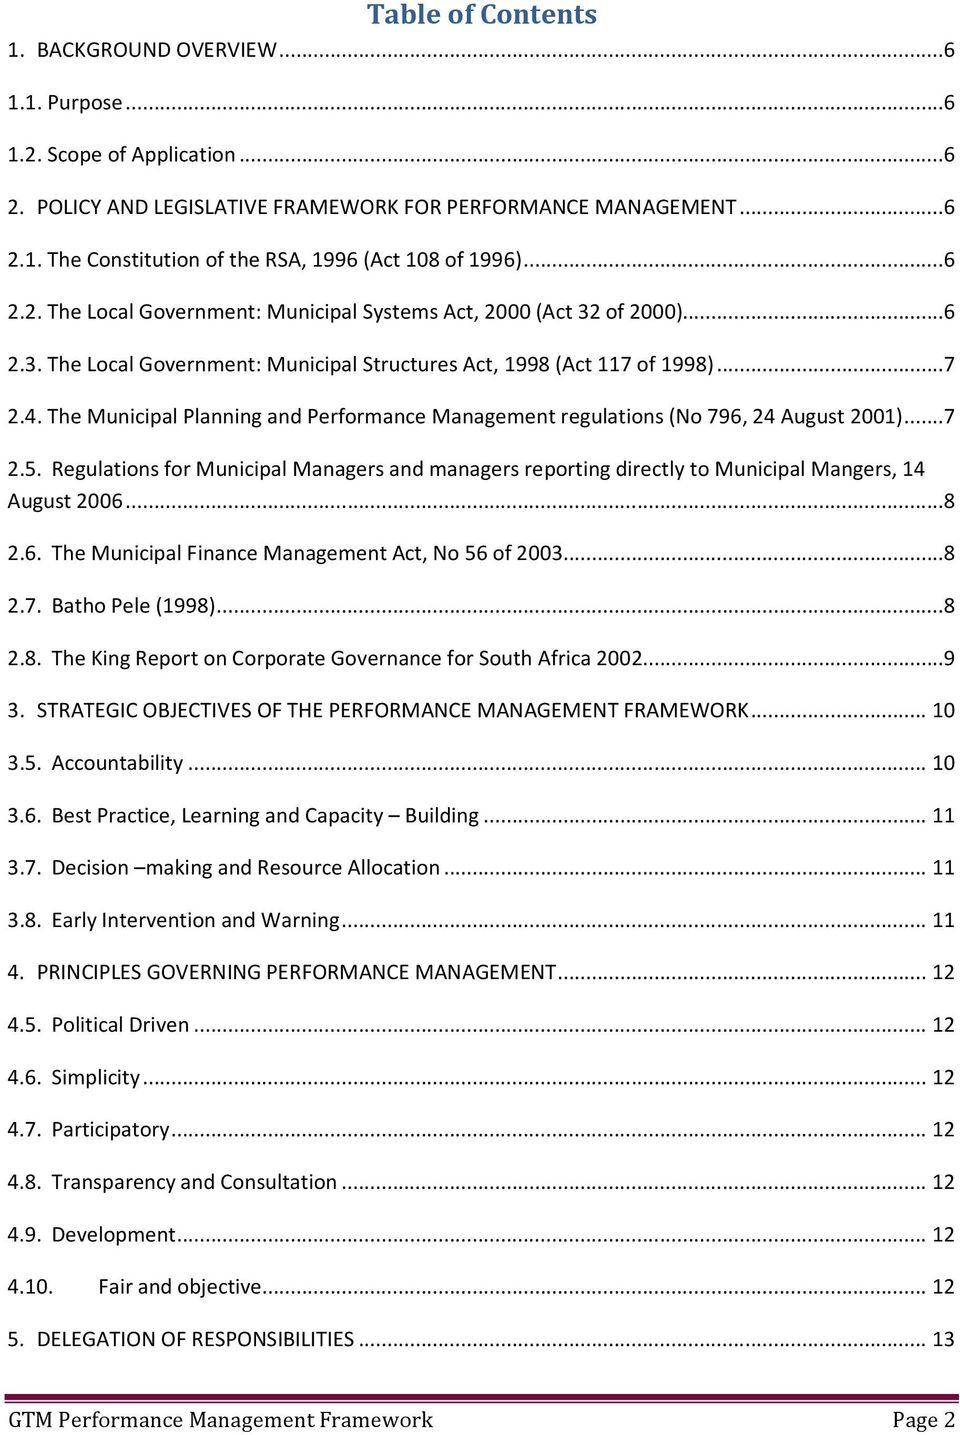 The Municipal Planning and Performance Management regulations (No 796, 24 August 2001)...7 2.5. Regulations for Municipal Managers and managers reporting directly to Municipal Mangers, 14 August 2006.